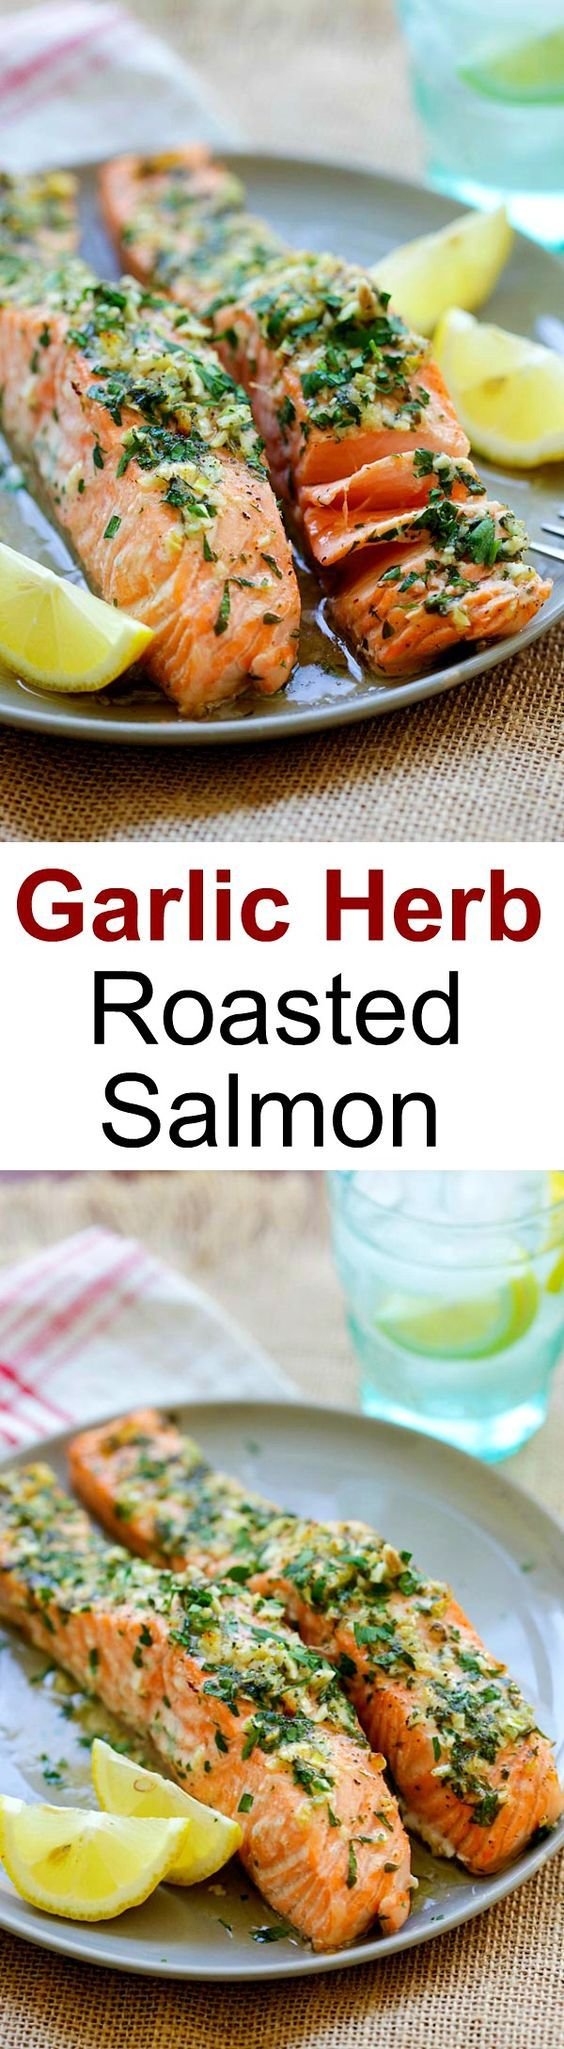 Garlic Herb Roasted Salmon – best roasted salmon recipe ever! Made with butter garlic herb lemon and dinner is ready in 20 minutes